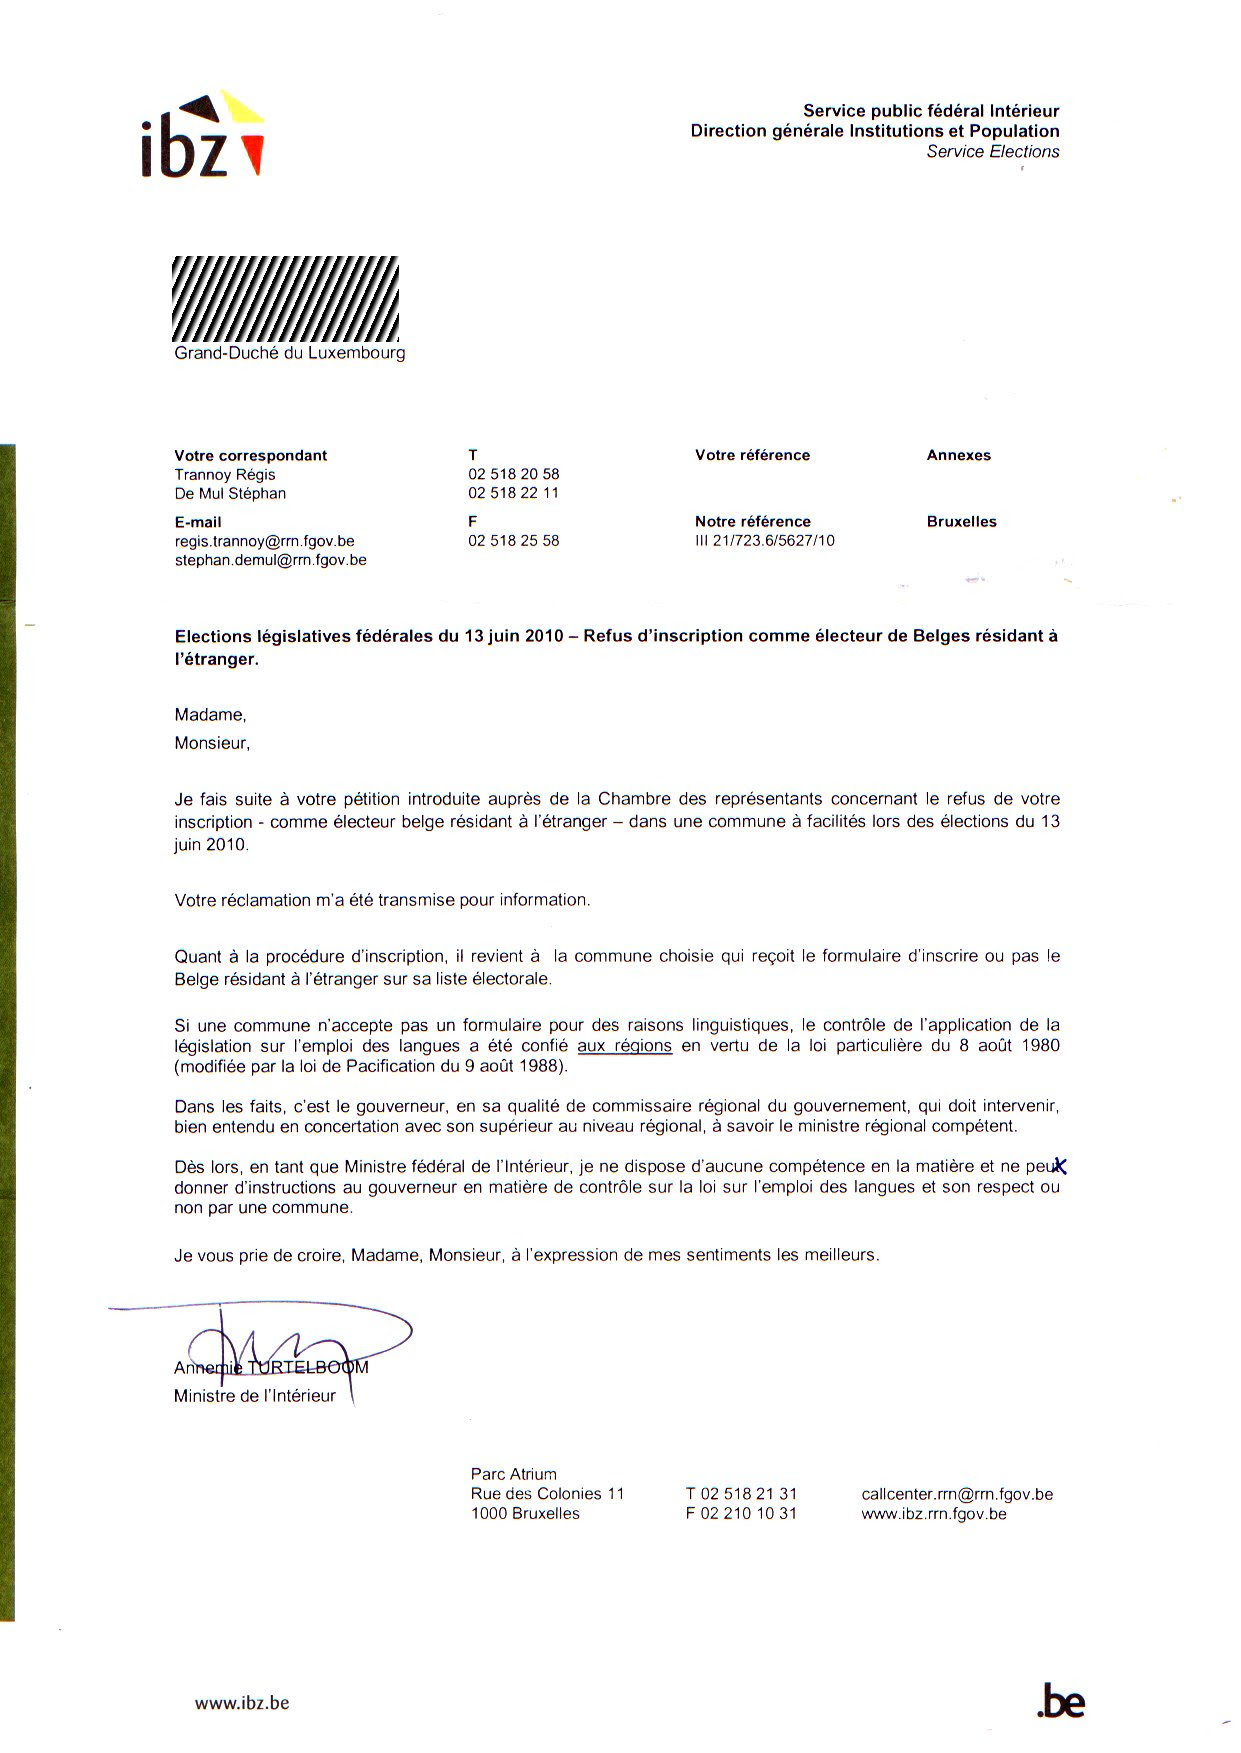 resume format  lettre de motivation exemple neerlandais